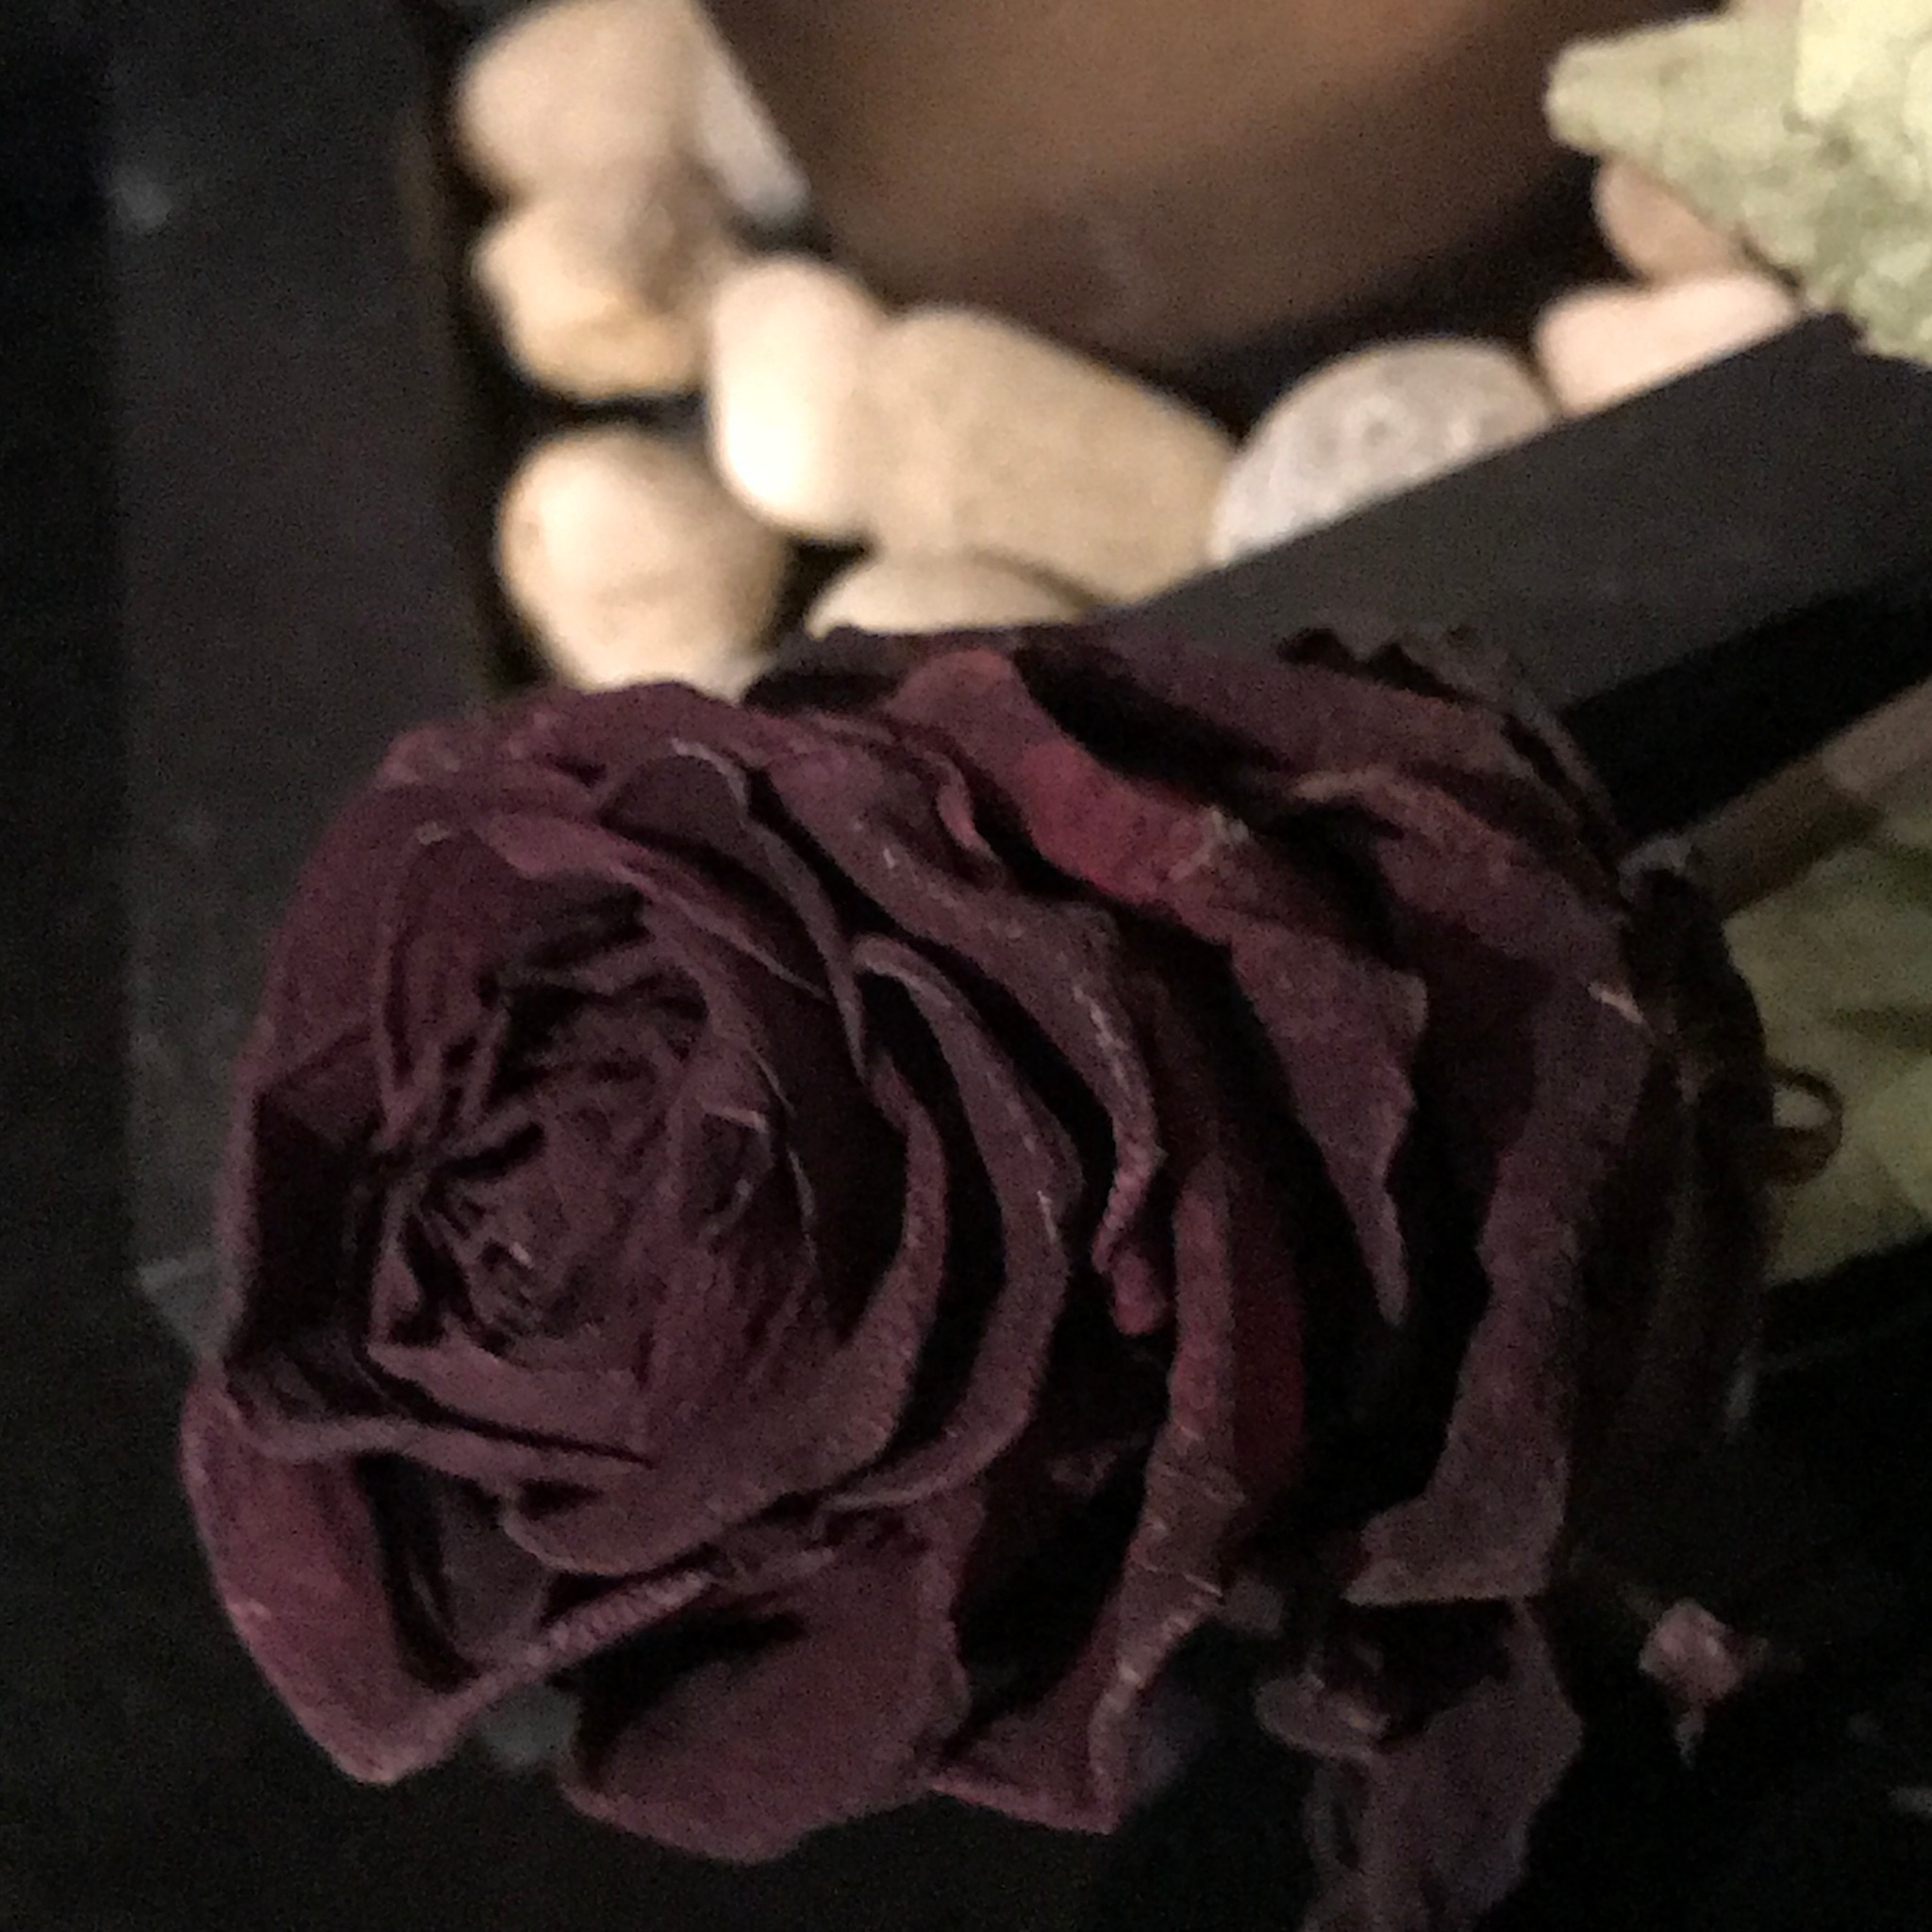 Rose by Michele